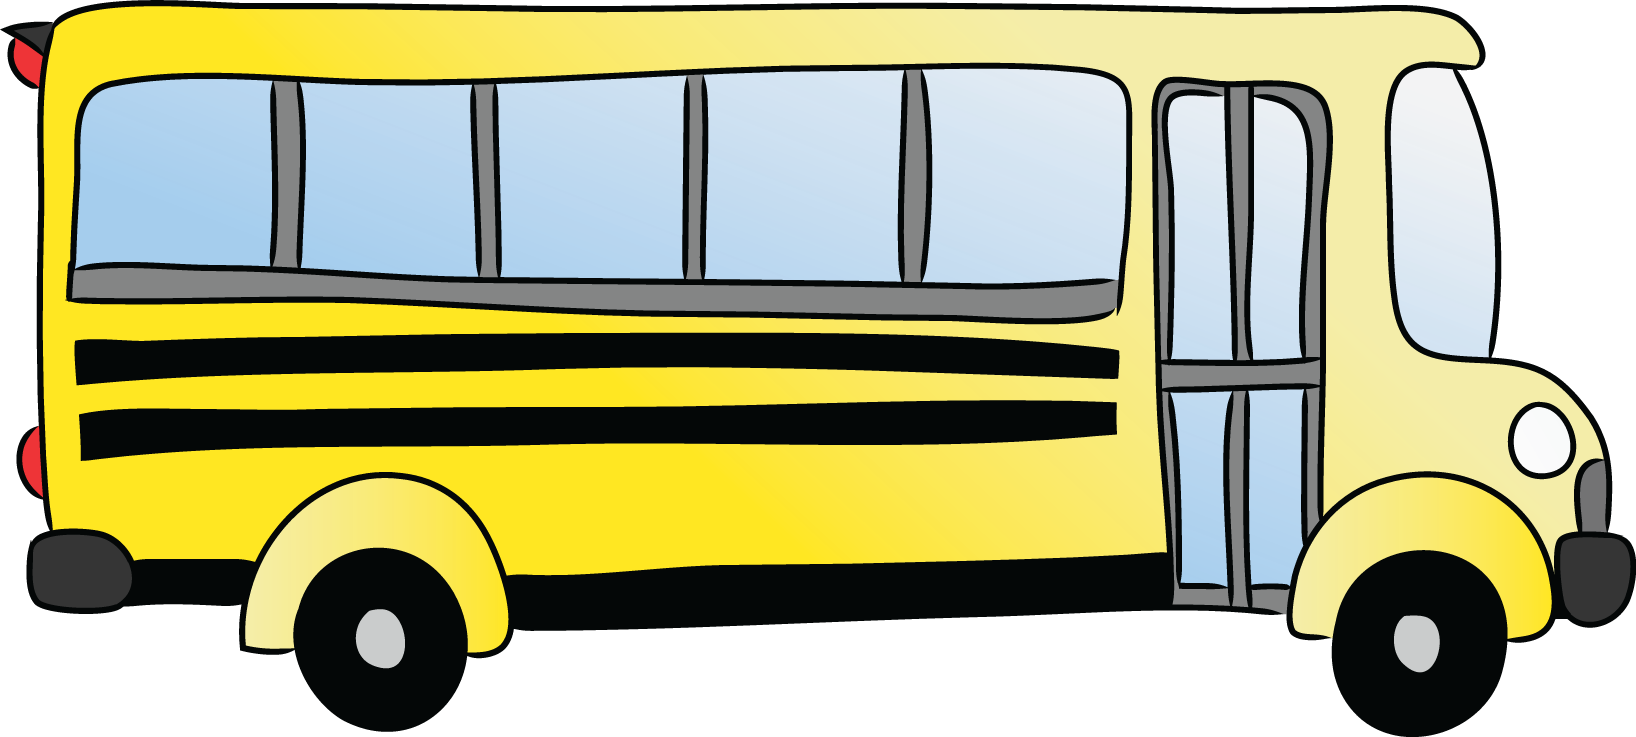 Free school bus clip art clip art school buses.